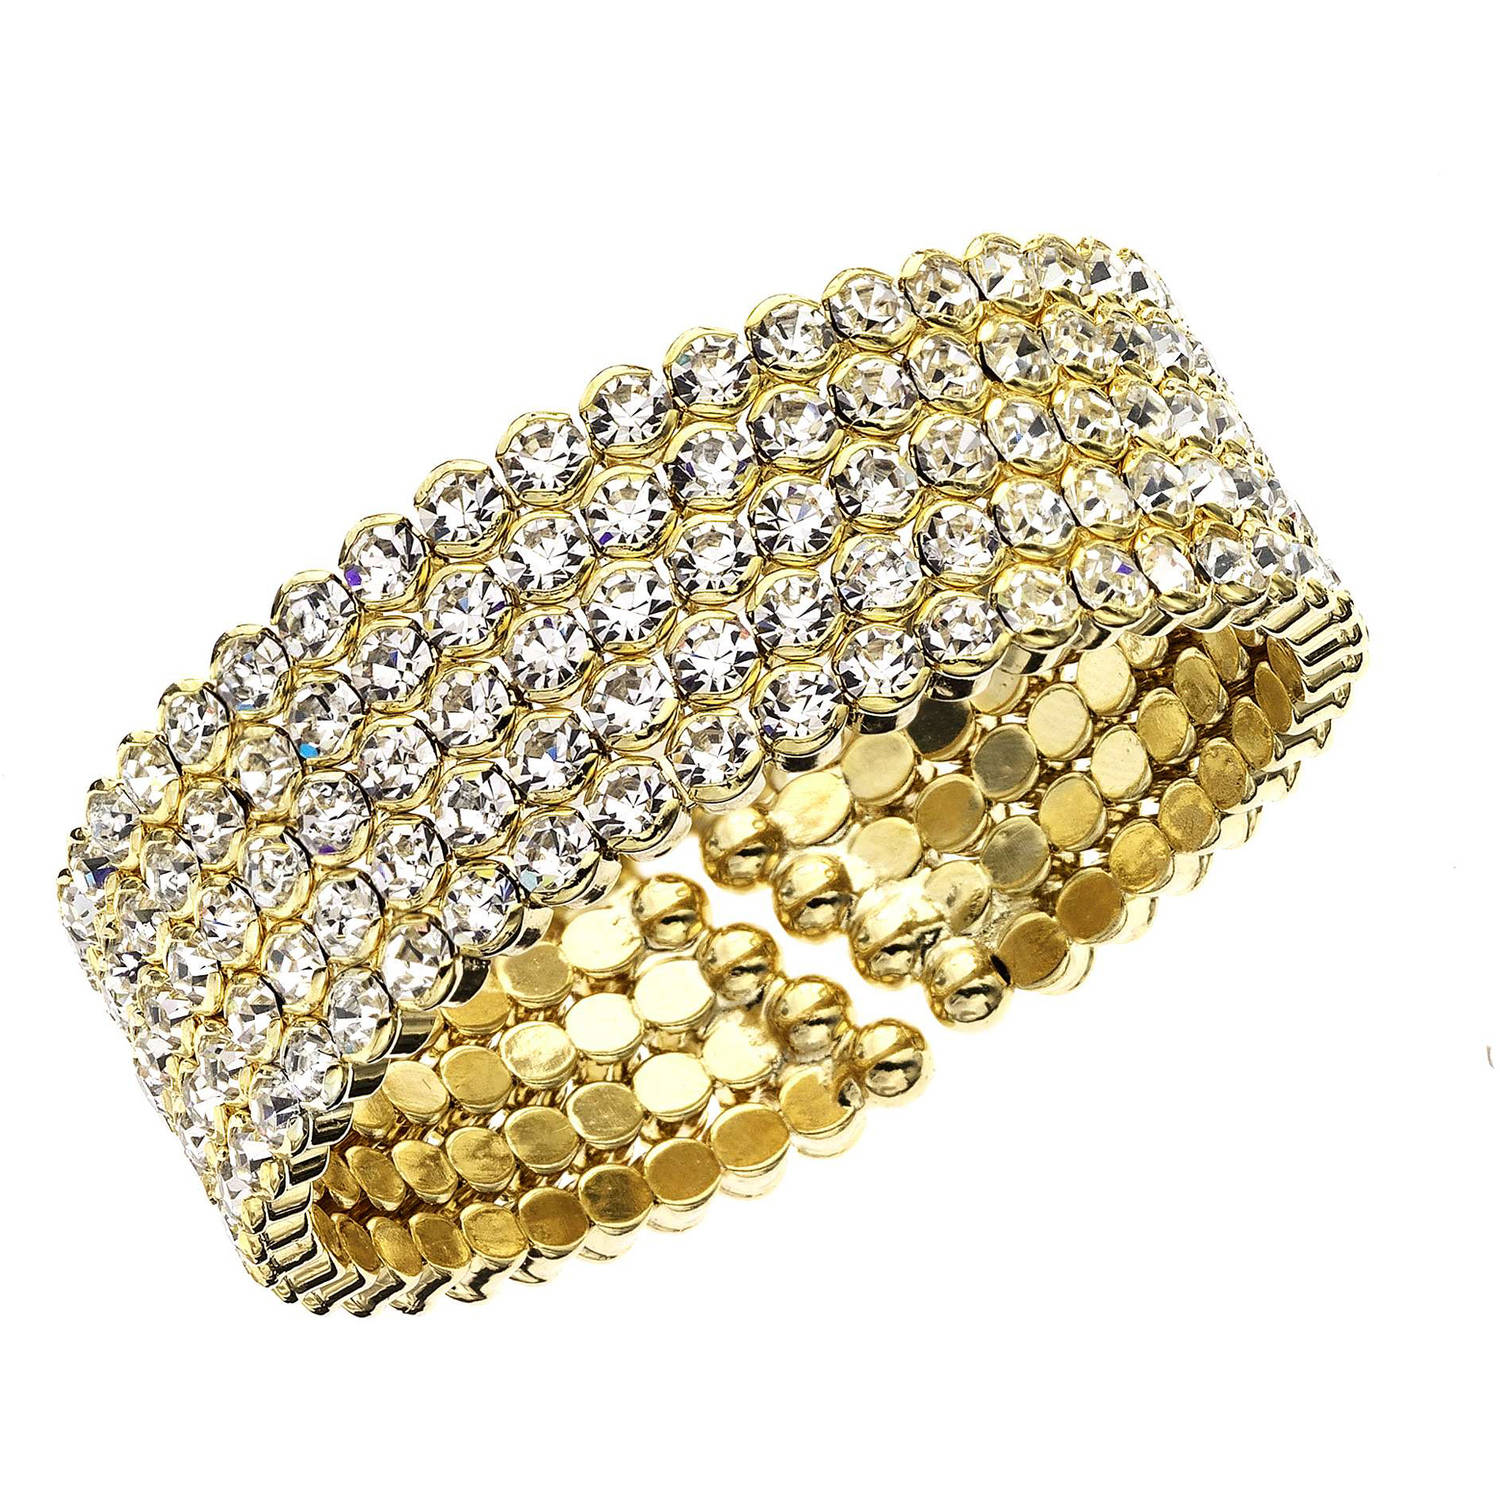 X & O 14kt Gold-Plated Five-Row Honeycomb Cuff Bracelet, One Size